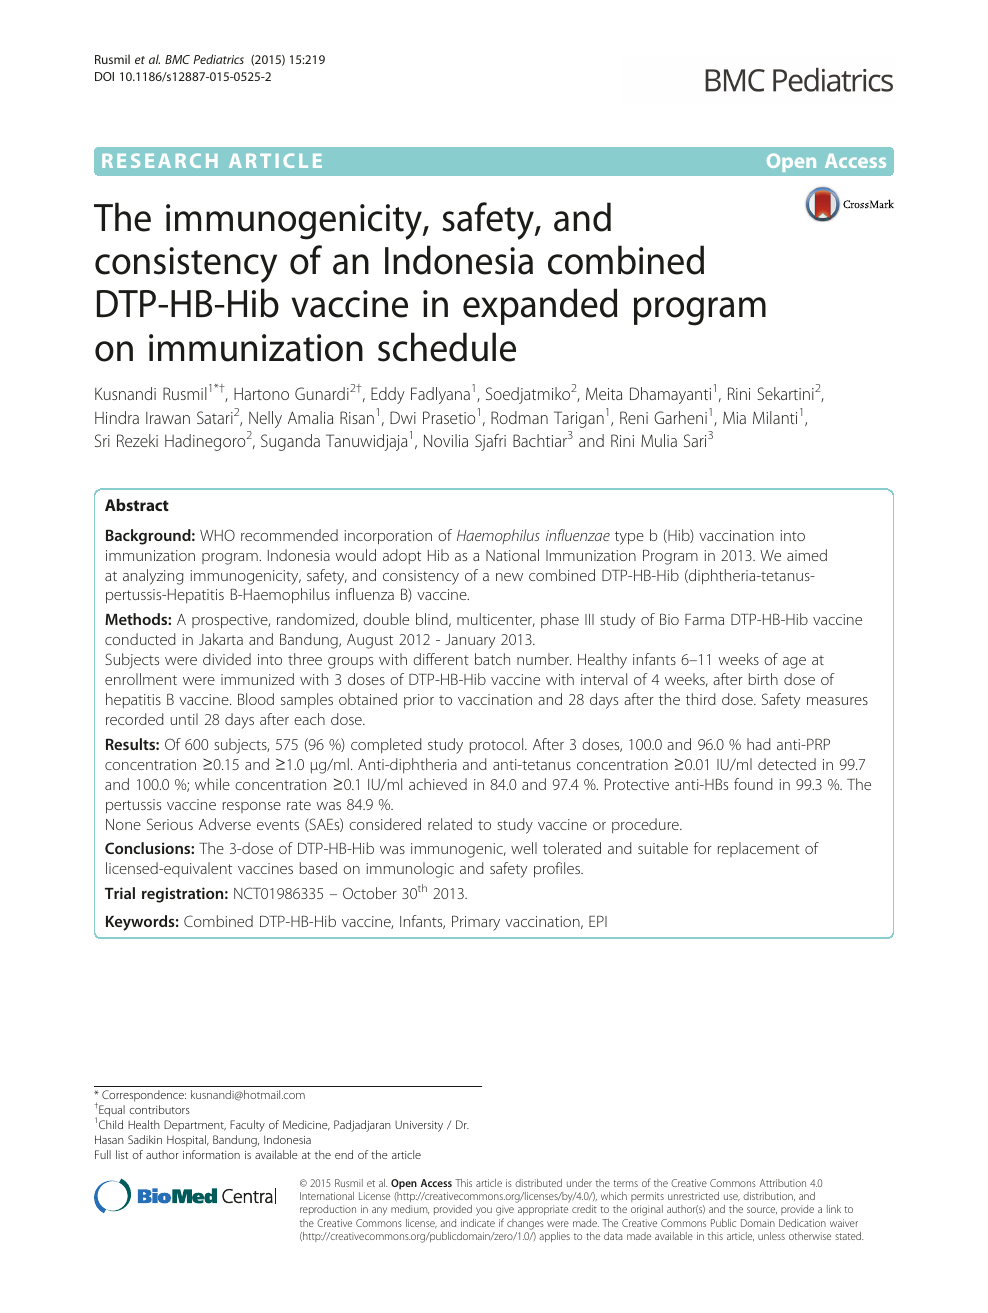 The immunogenicity, safety, and consistency of an Indonesia combined